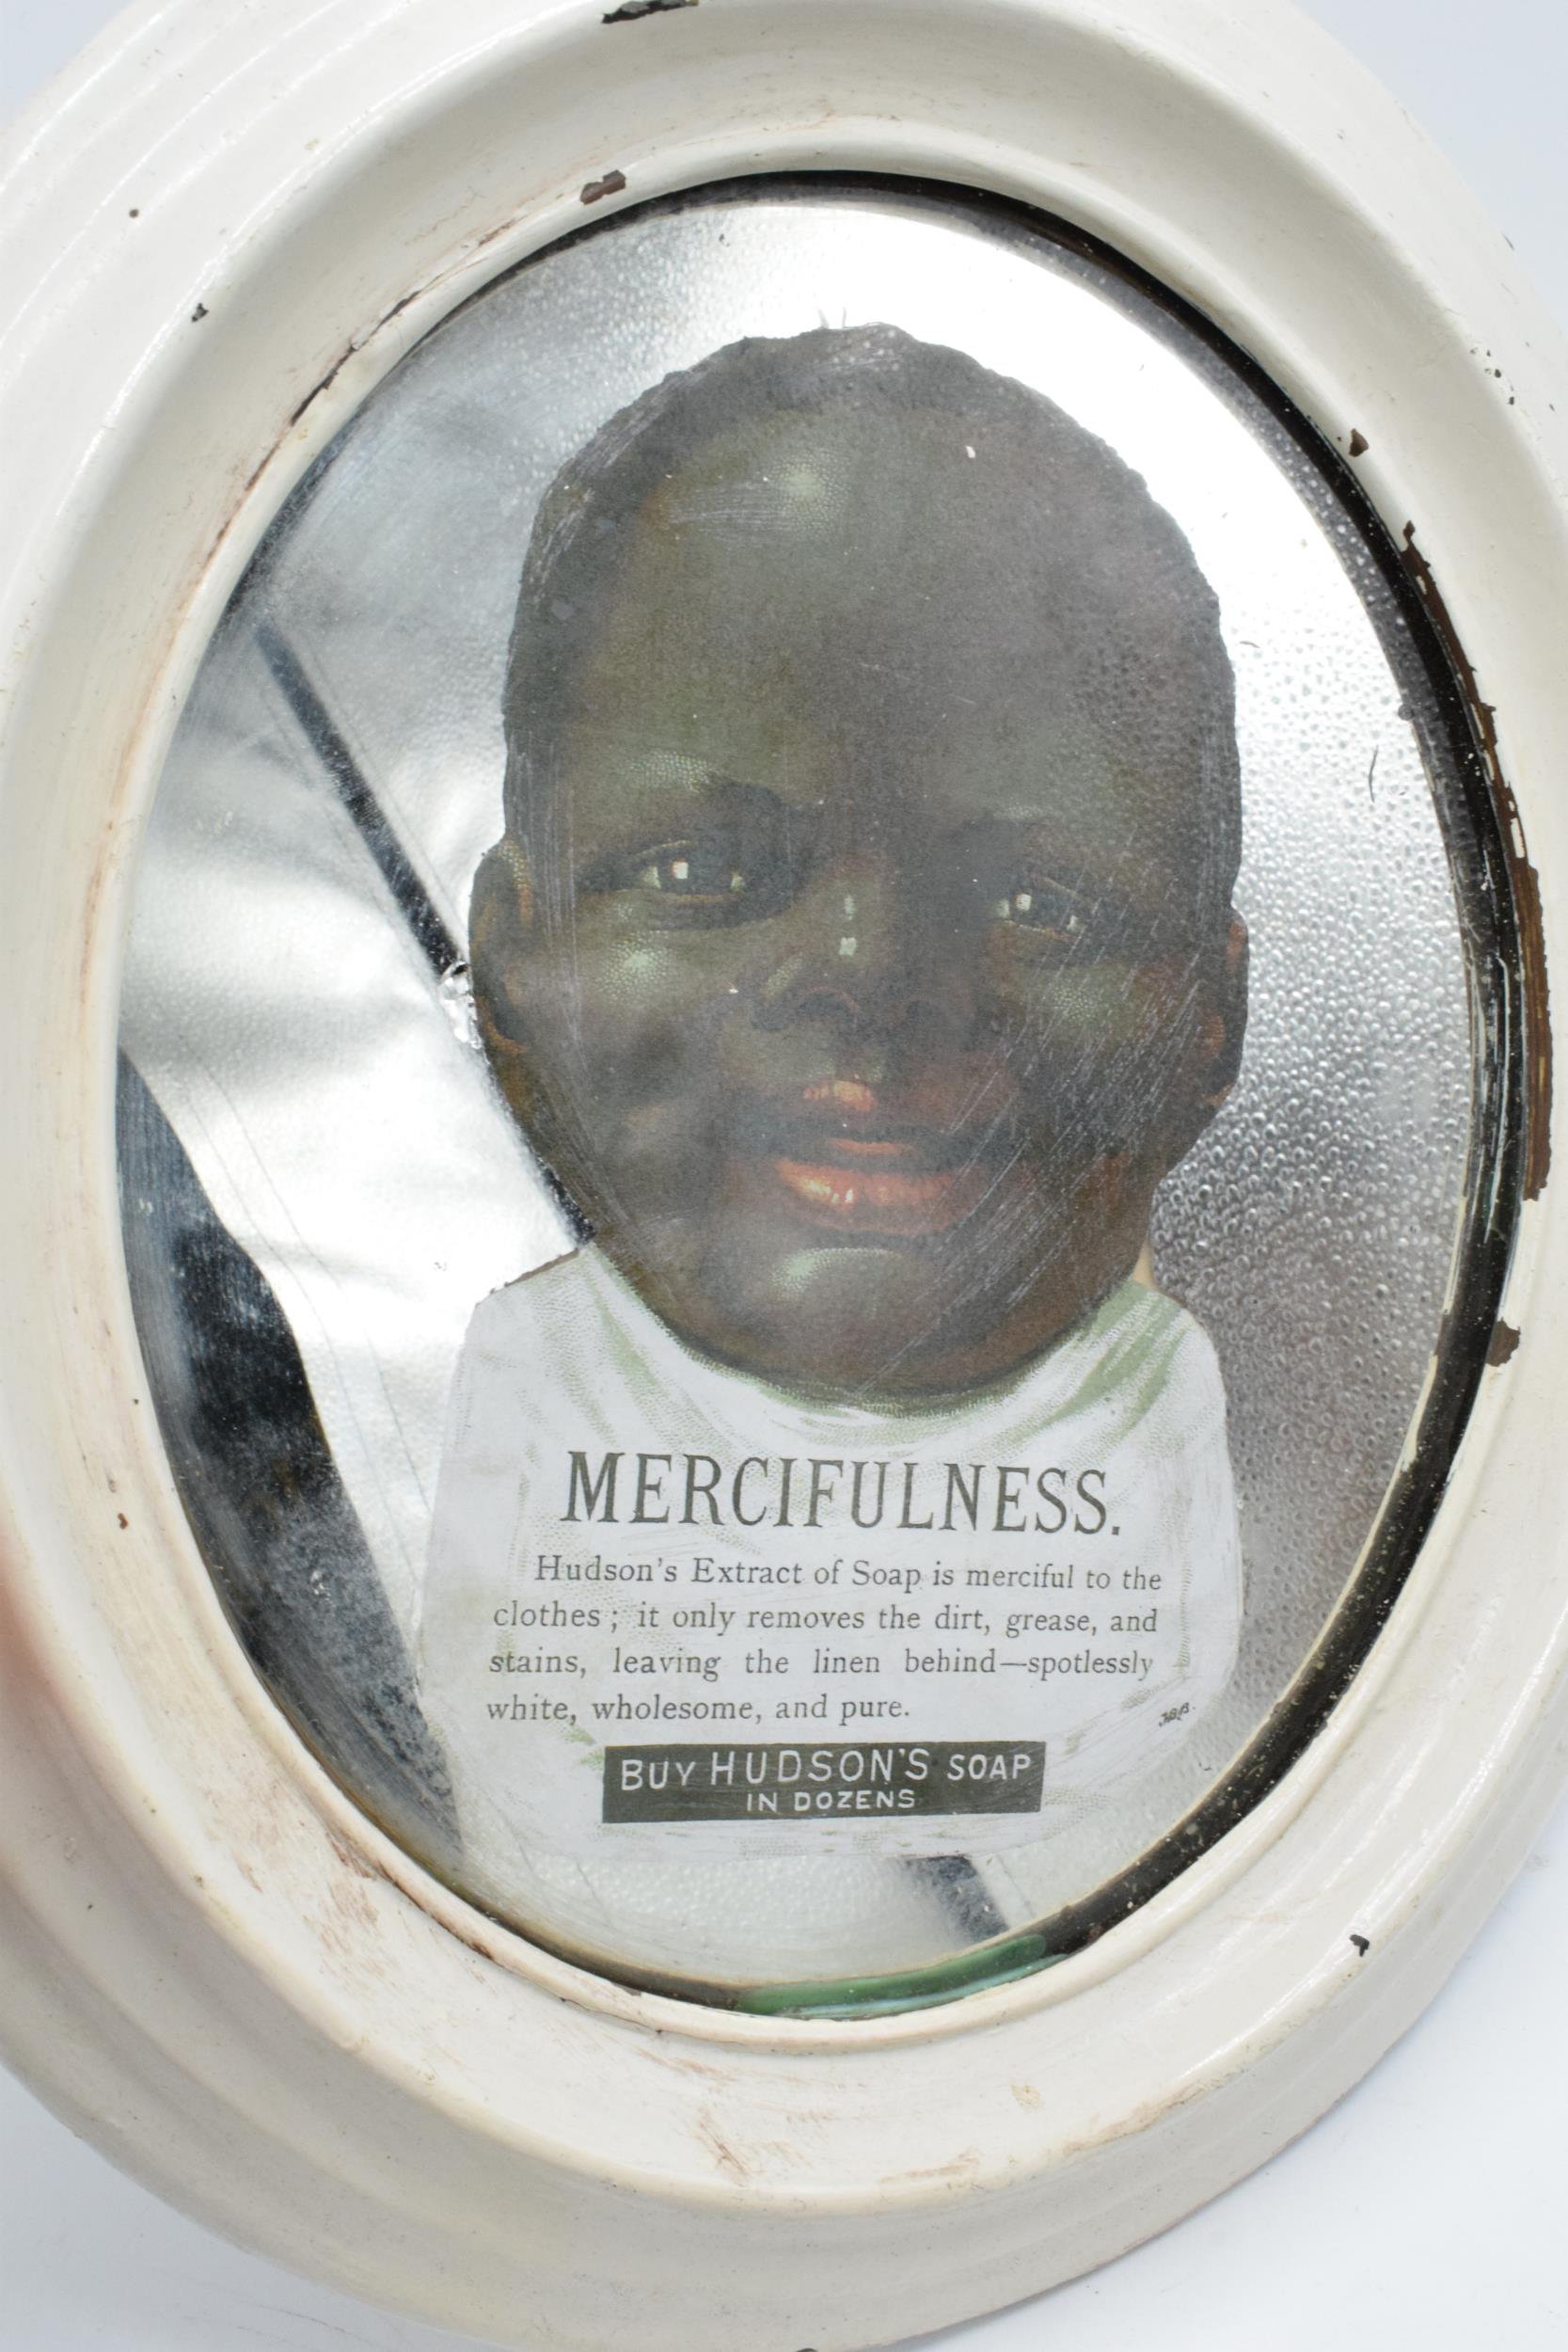 An early to mid 20th century oval advertising mirror for Hudson's Soap 'Mercifulness... Buy Hudson's - Image 2 of 3